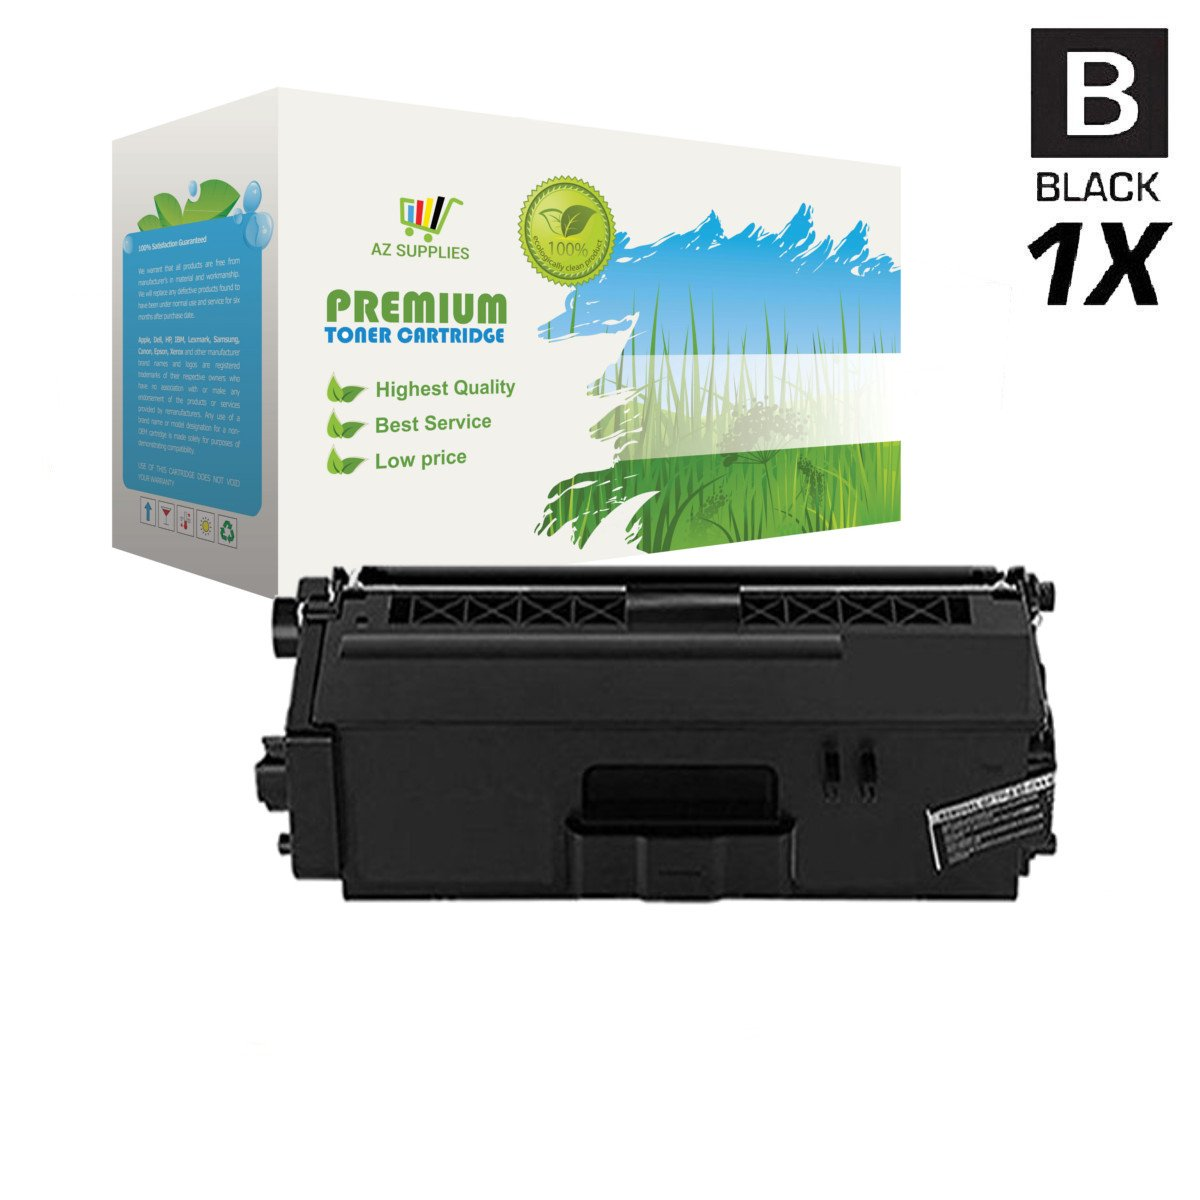 AZ Supplies Toner | 40% more Print Yield | replace Brother TN-336BK Black for use in Brother DCP-L8400CDN, DCP-L8450CDW, HL-L8250CDN, HL-L8350CDW, MFC-L8650CDW, MFC-L8850CDW